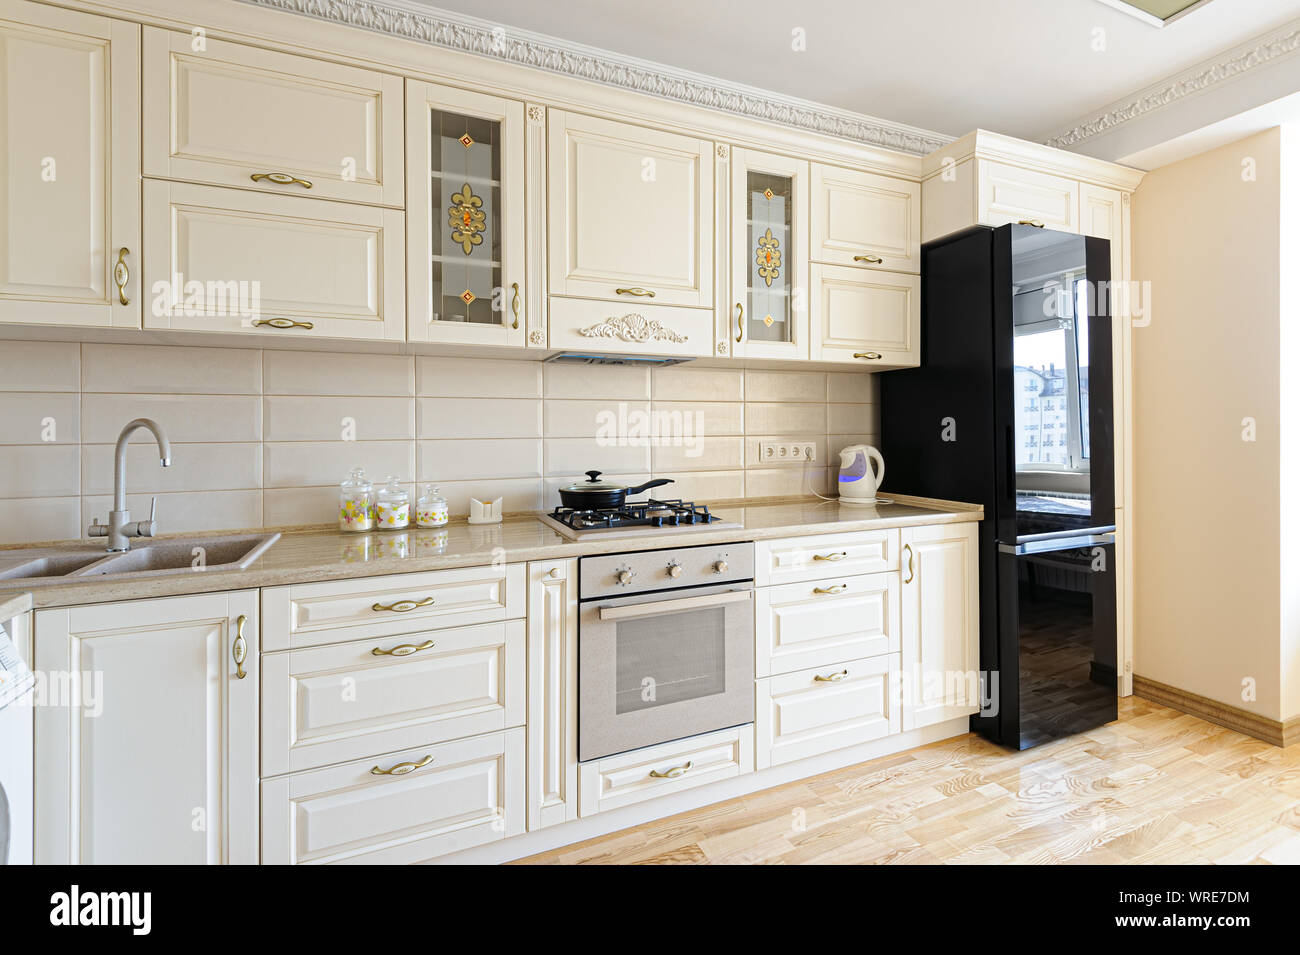 Luxury Modern Beige And White Kitchen Interior Stock Photo Alamy